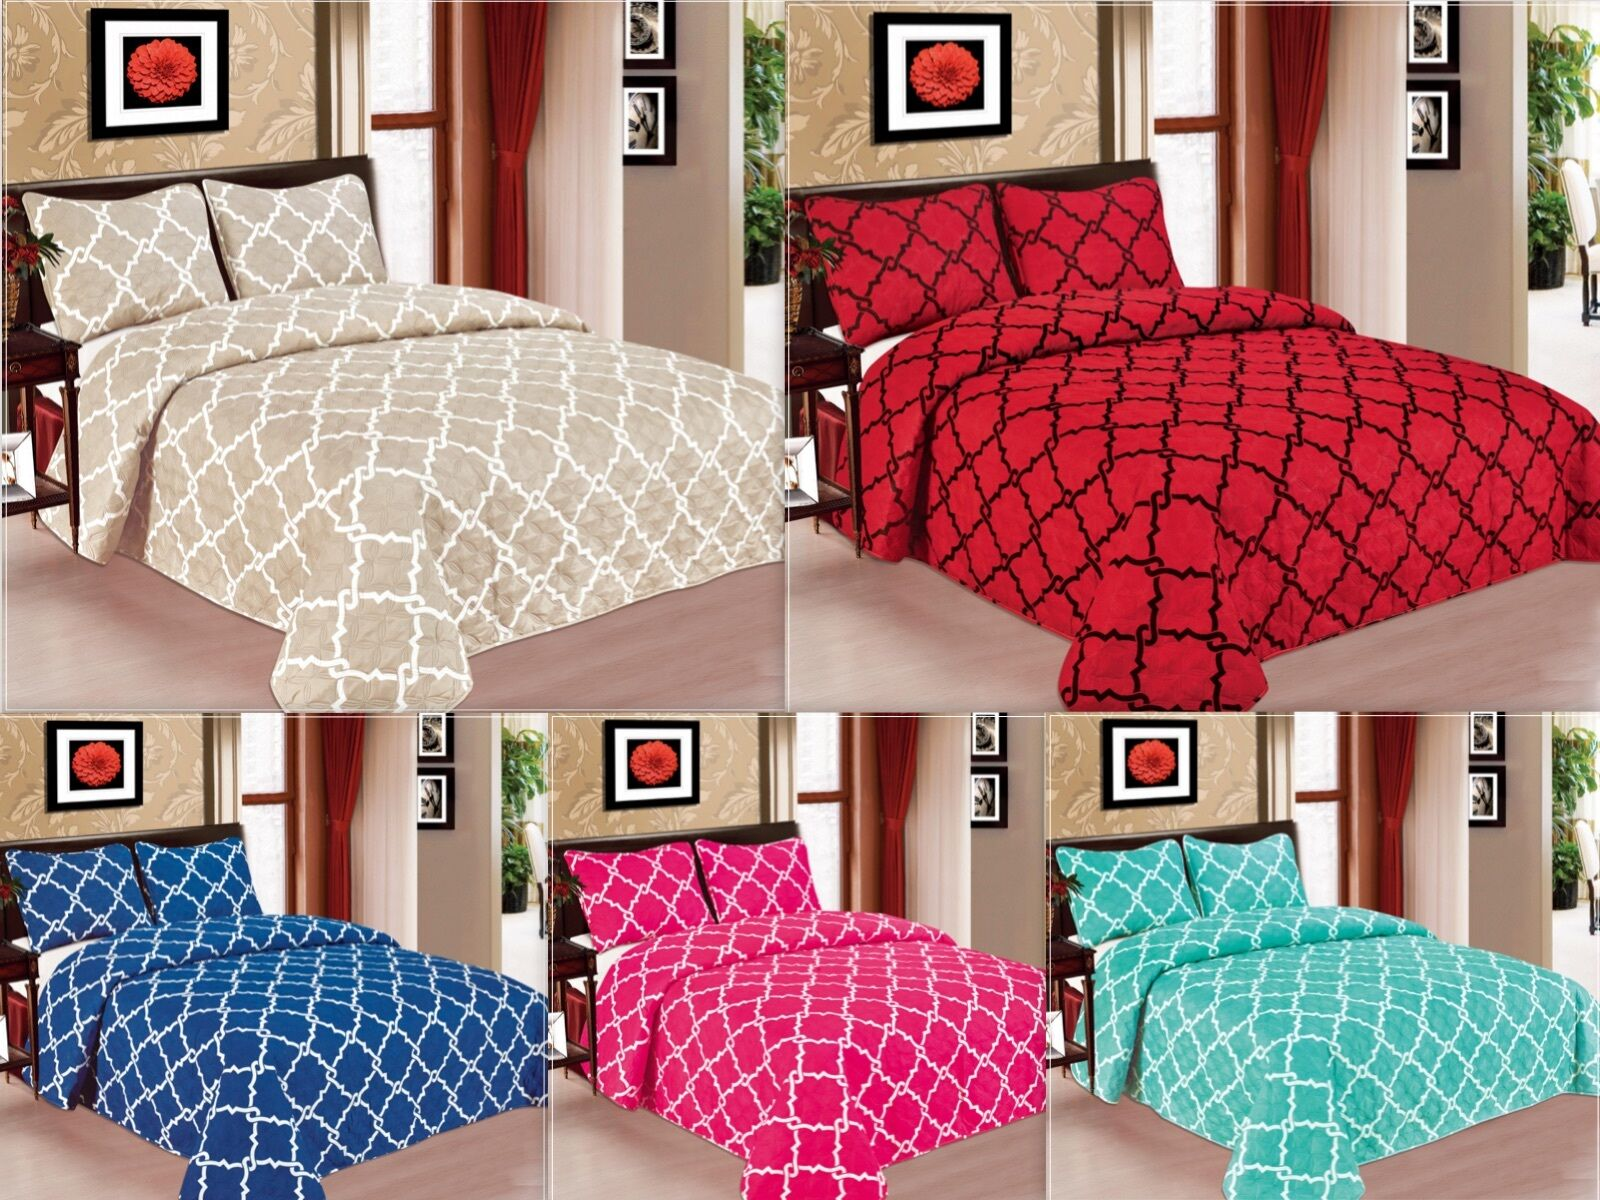 Geometric 3-PC Quilted Bedspread Bed cover Coverlet Many Col